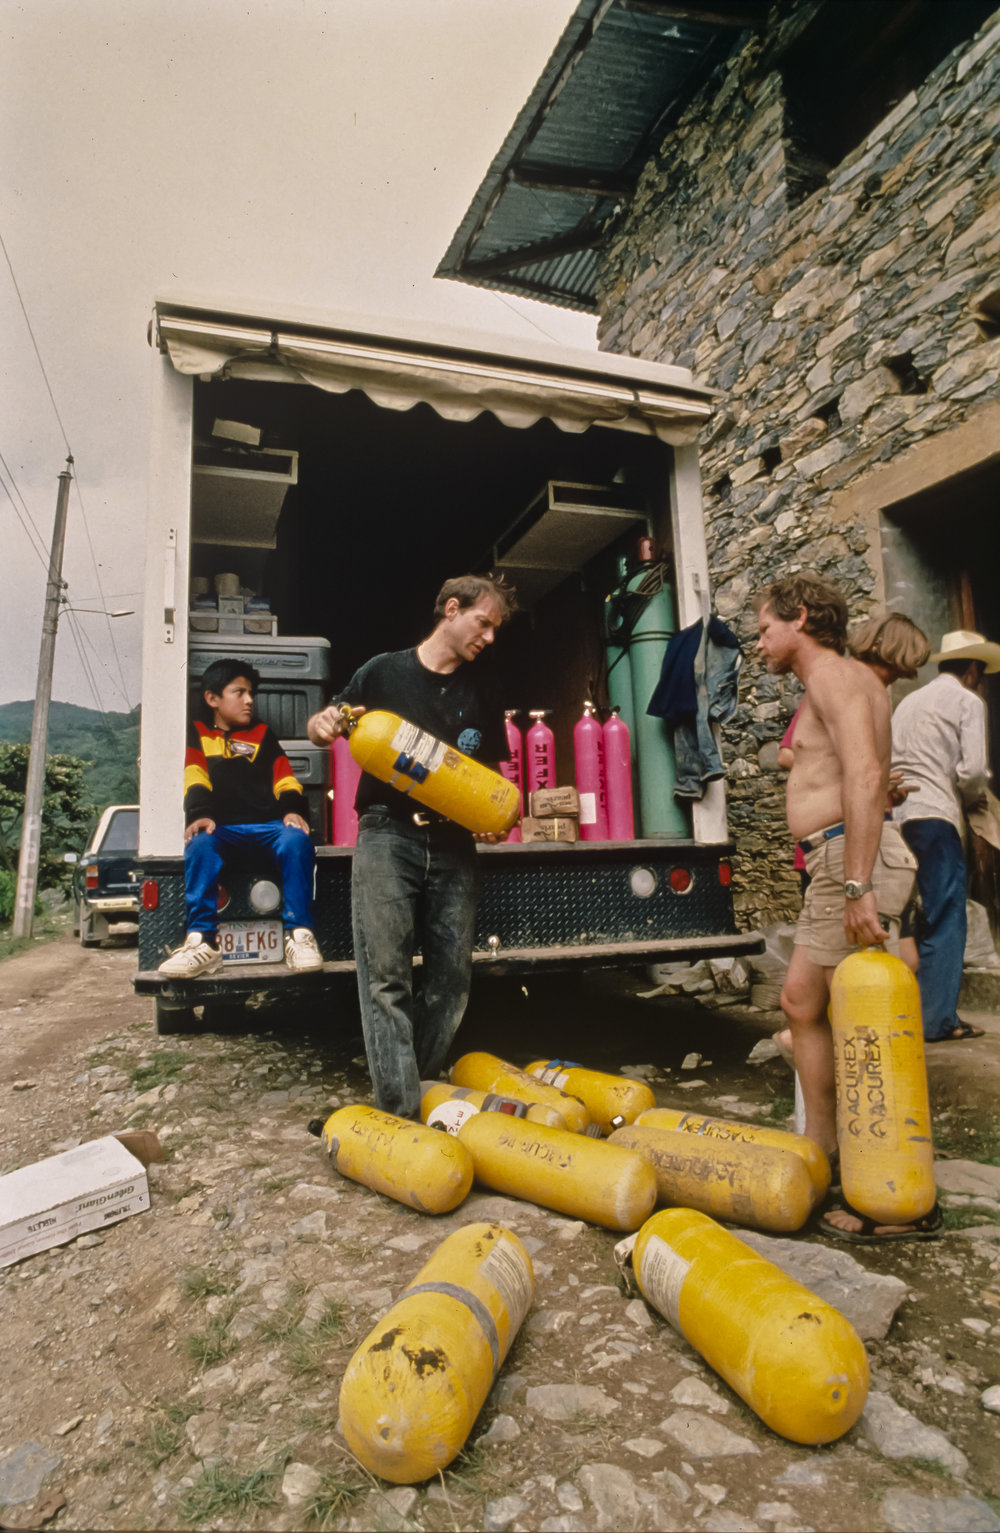 Arrival: Noel Sloan and Don Broussard unload dive cylinders at the house of Epifanio Villega. Photo by U. S. Deep Caving Team/Bill Stone.